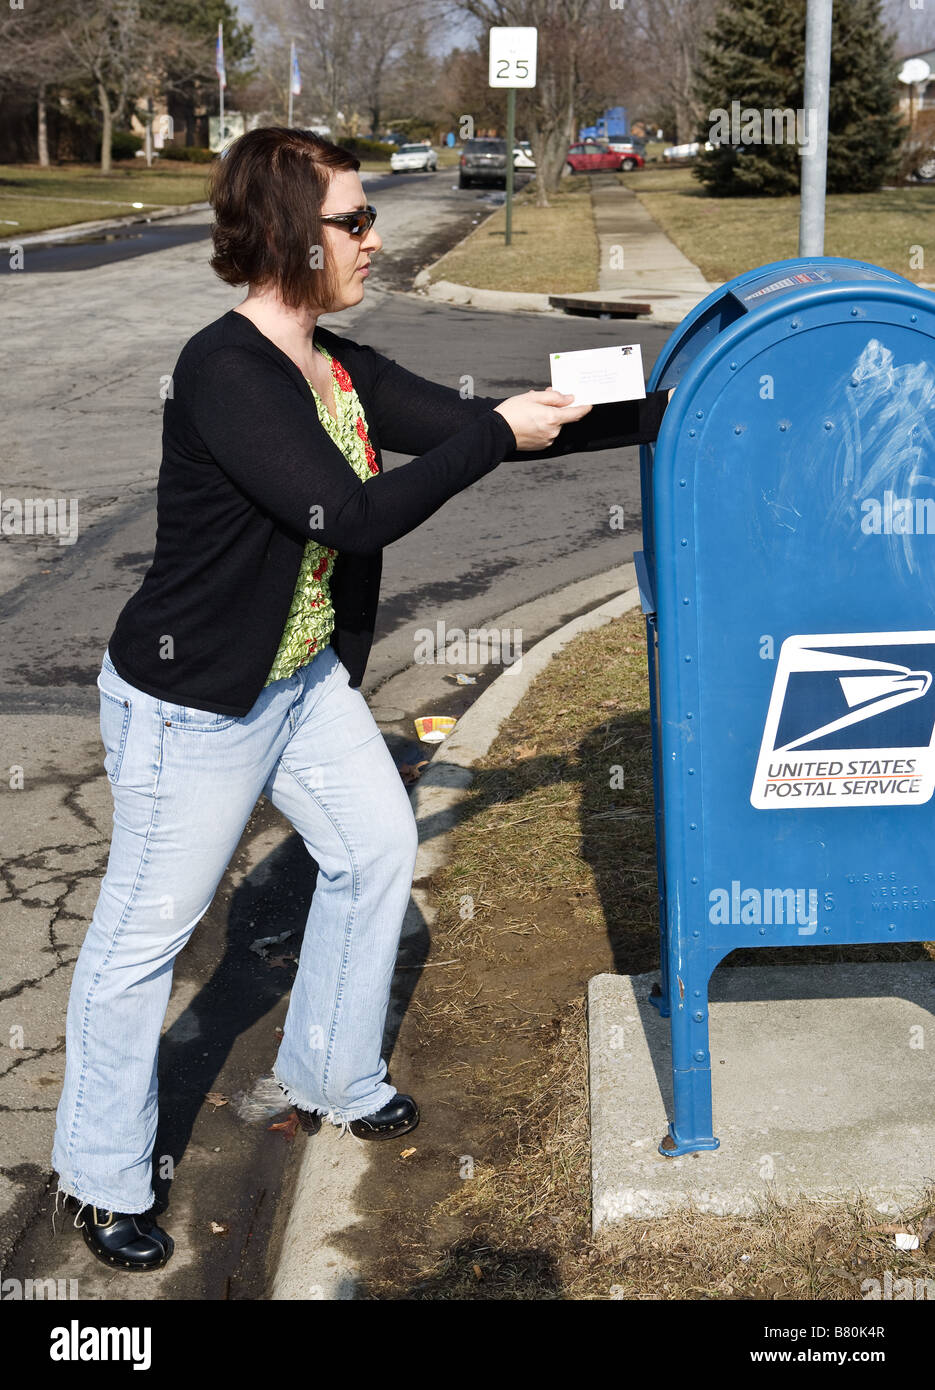 A woman mailing a letter - Stock Image